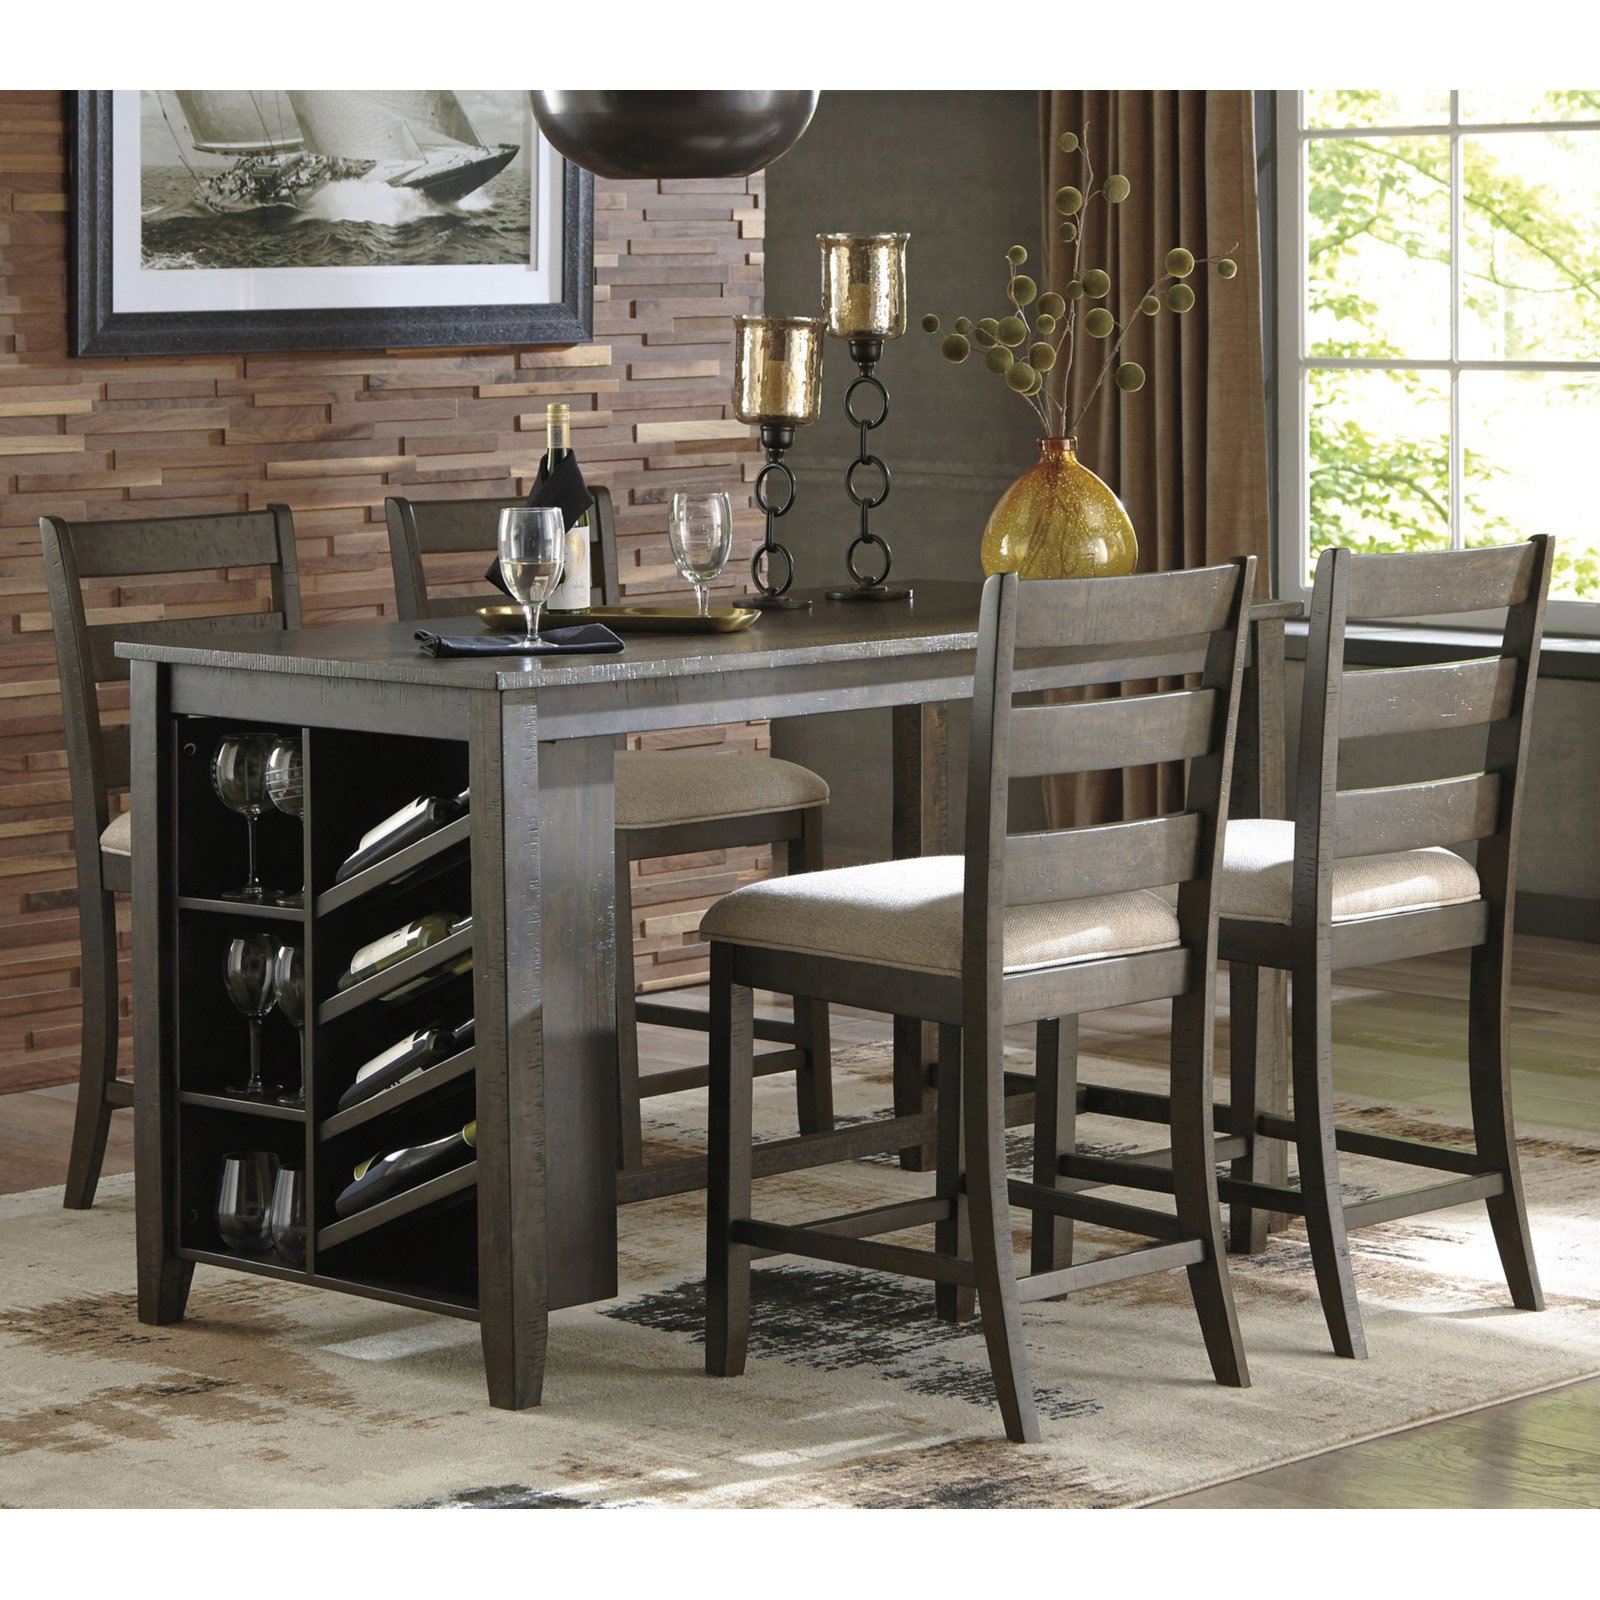 Signature Designashley Rokane 5 Piece Counter Height Dining Intended For Best And Newest Berrios 3 Piece Counter Height Dining Sets (View 18 of 20)